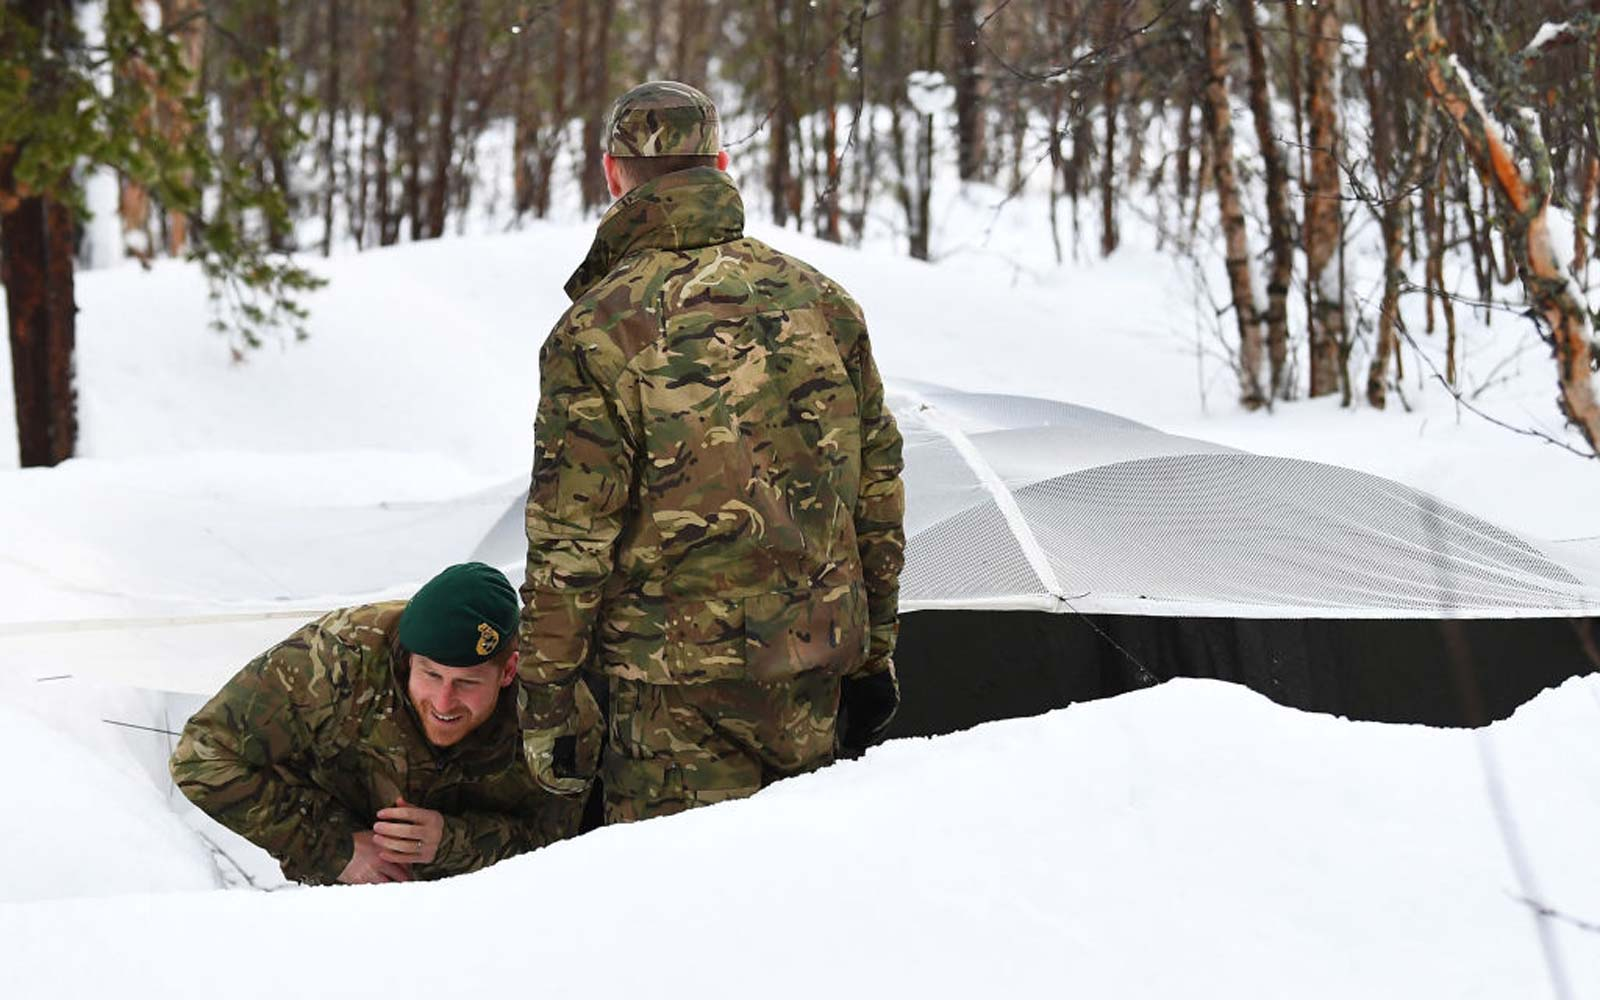 Prince Harry, Duke of Sussex exits a Quincey Shelter, a makeshift shelter built of snow